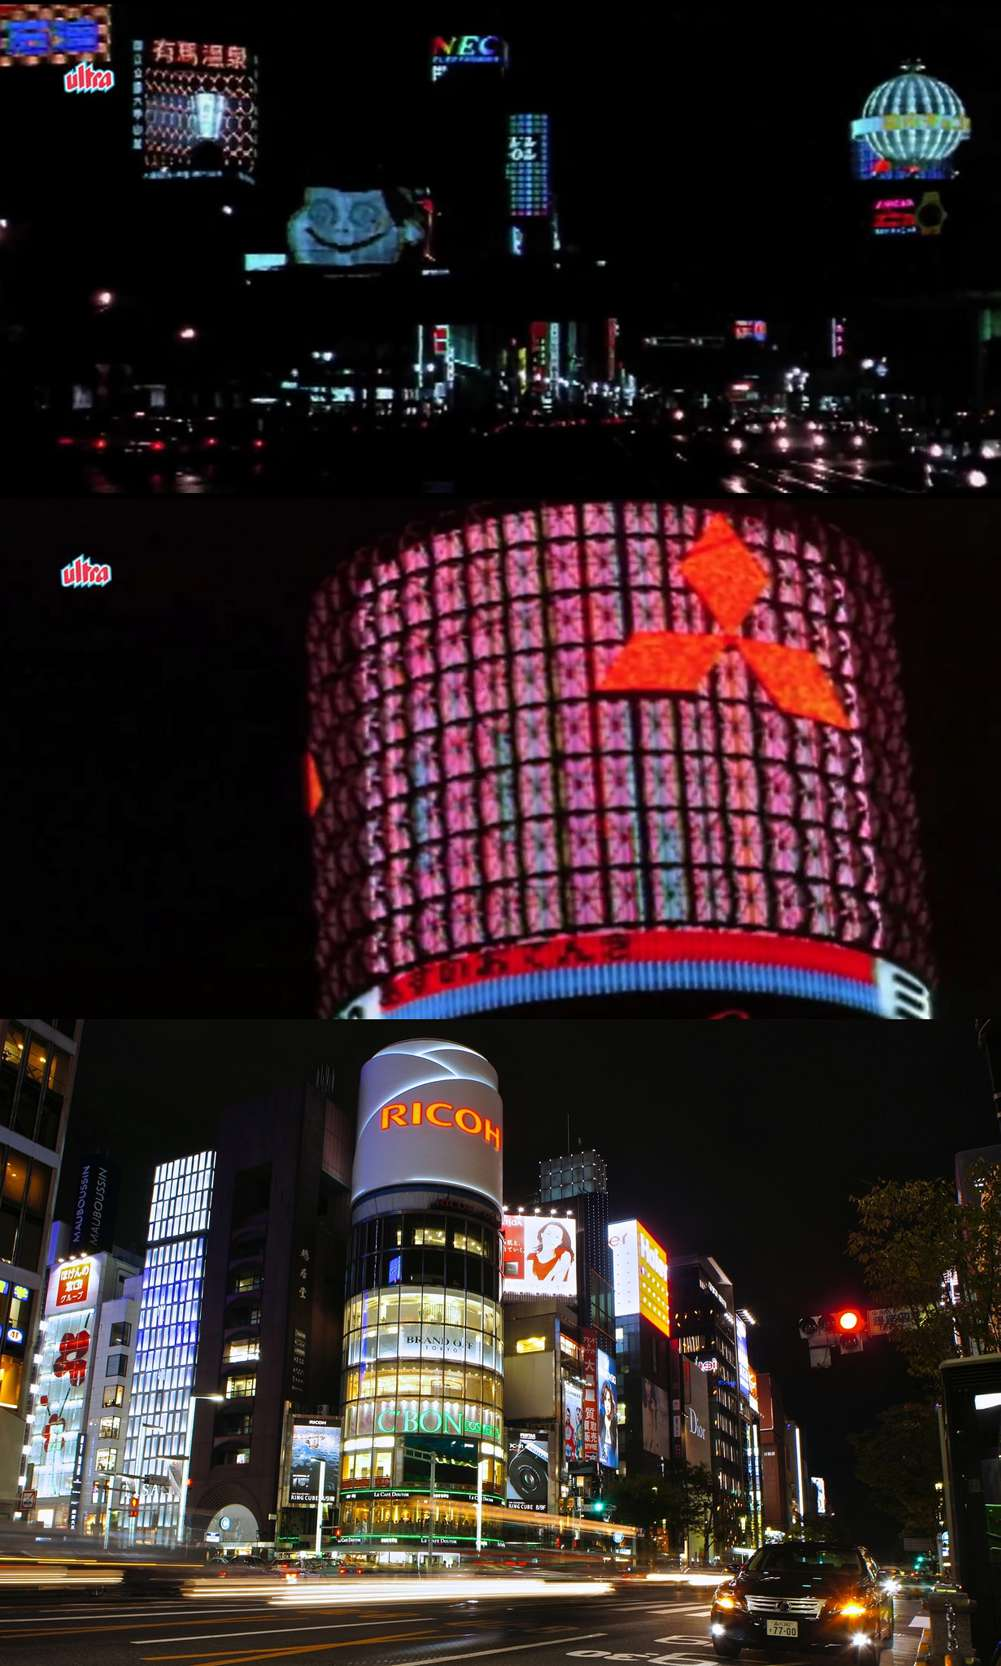 If it is neon, it must be Ginza, the iconic shopping district.